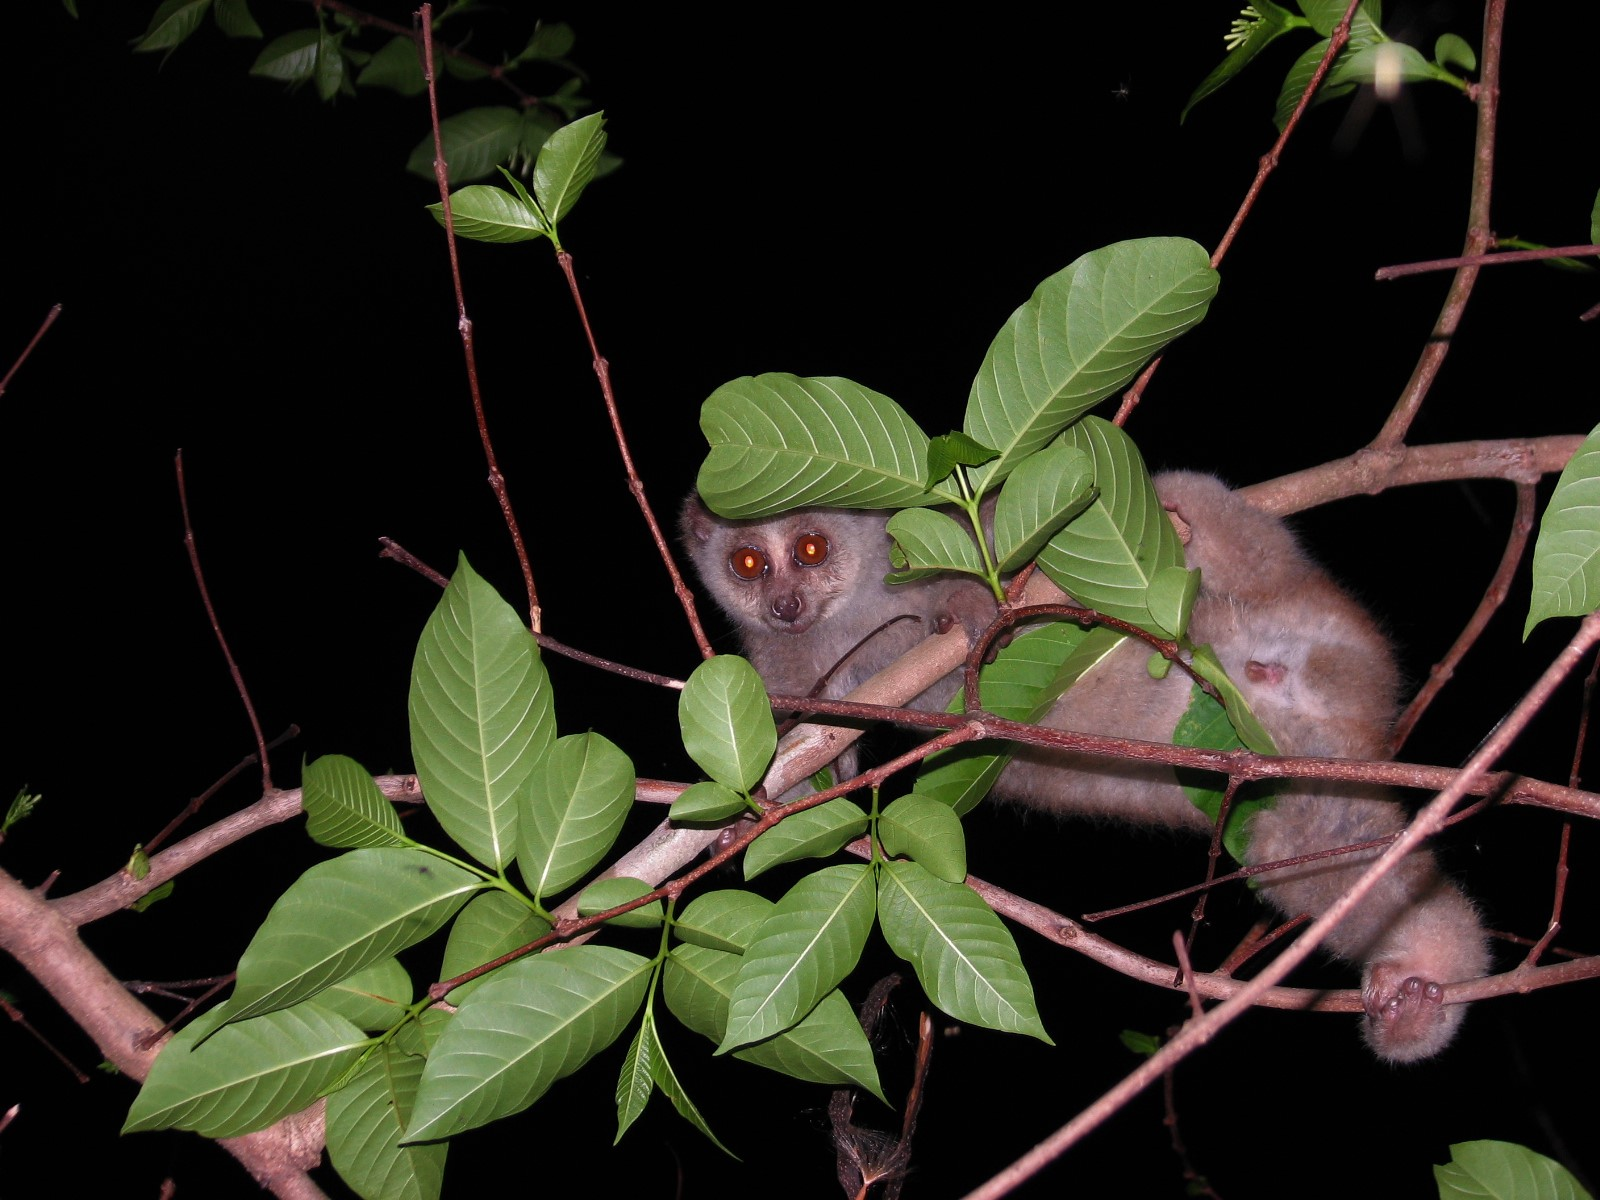 The Bengal slow loris is a little known, nocturnal, arboreal primate with a wide geographical distribution ranging from Northeast India in the west to parts of Vietnam in the east. In India they are known to occur in seven of the north-eastern states excluding Sikkim. Photo: Swapna Nelaballi